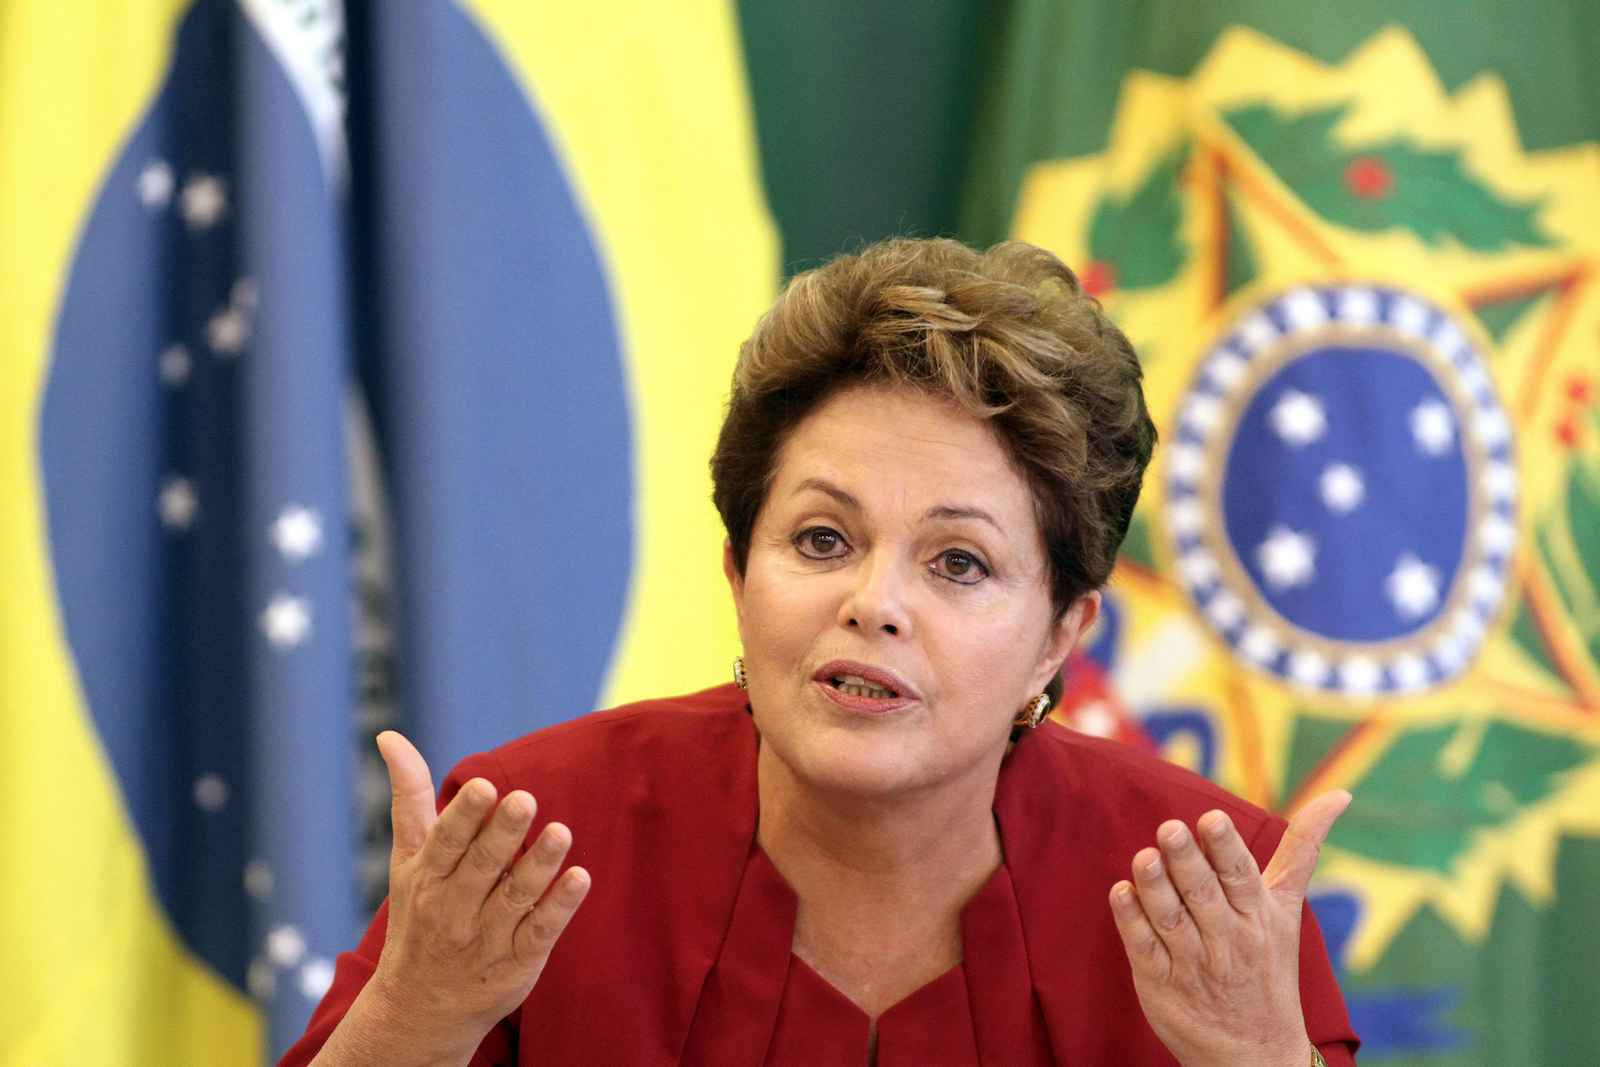 Brazil's President Dilma Rousseff speaks during a breakfast meeting with reporters at the Planalto presidential palace in Brasilia, Brazil, Thursday, Dec. 27, 2012. (AP Photo/Eraldo Peres) Brazil Rousseff